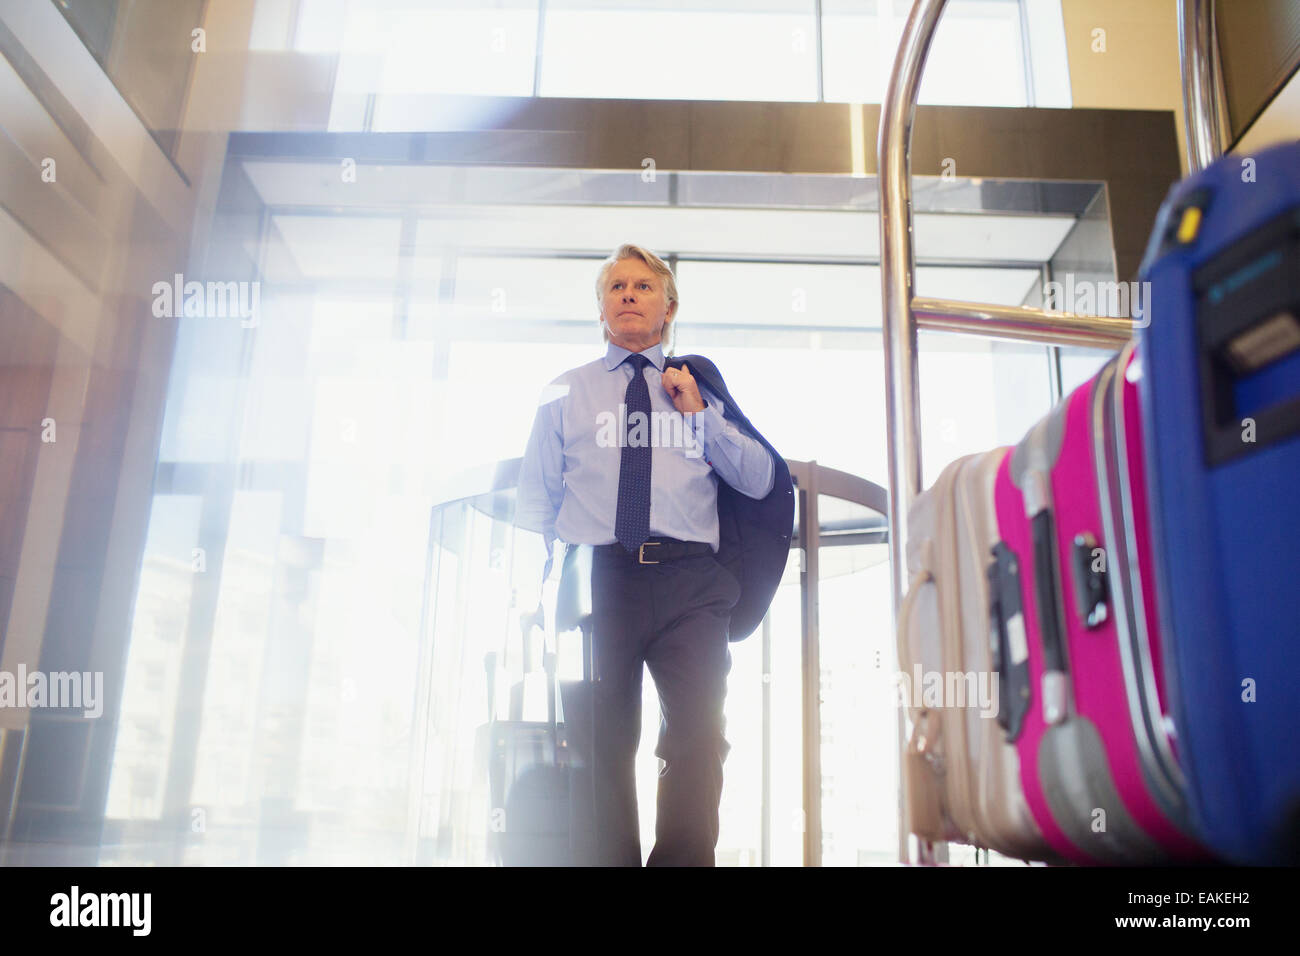 Low angle view of man entering hotel lobby, suitcases on luggage cart in foreground - Stock Image